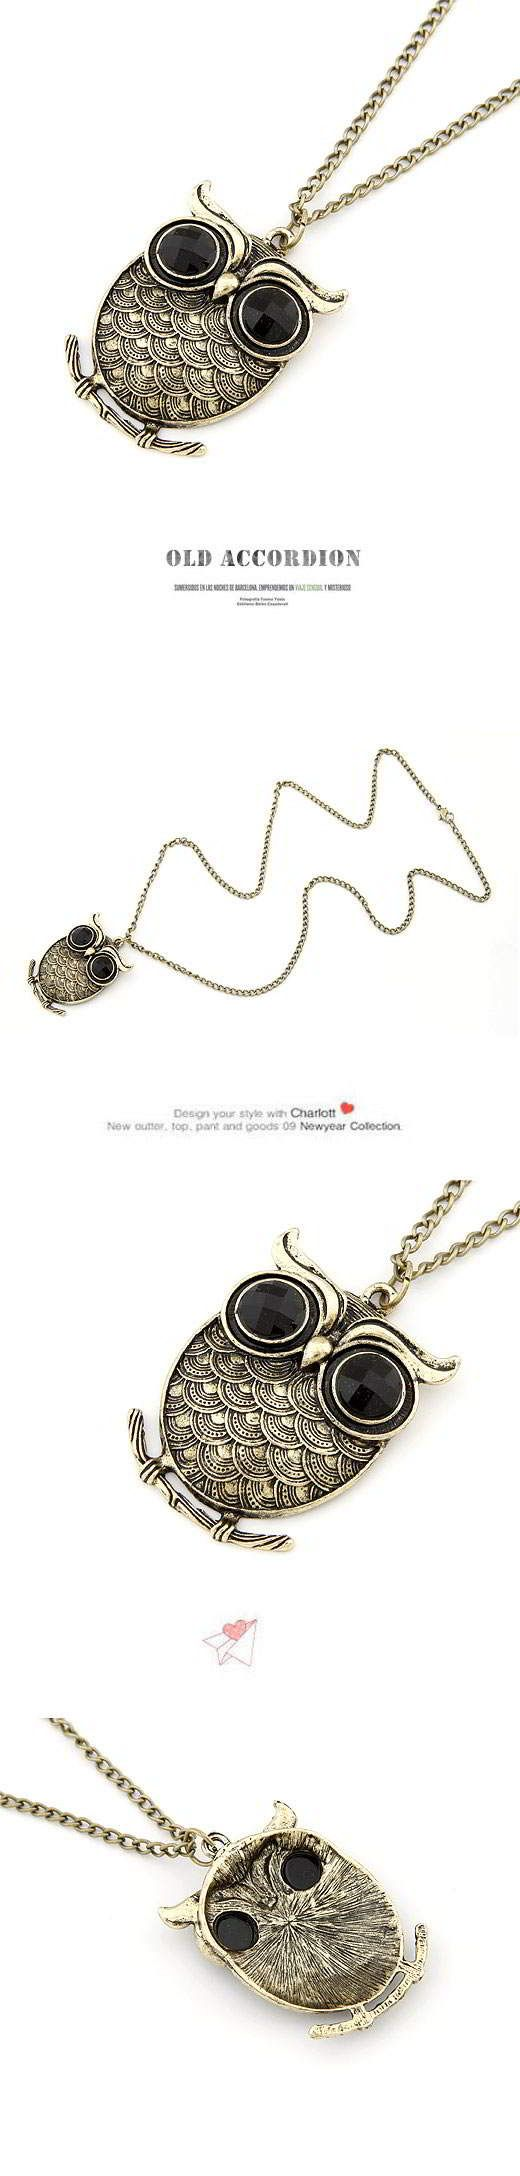 Korean Exquisite Vintage Fashion Squama OWL Pendant Charm Sweater Chain General Small and catchy. REPIN if you like it. Only 22 IDR